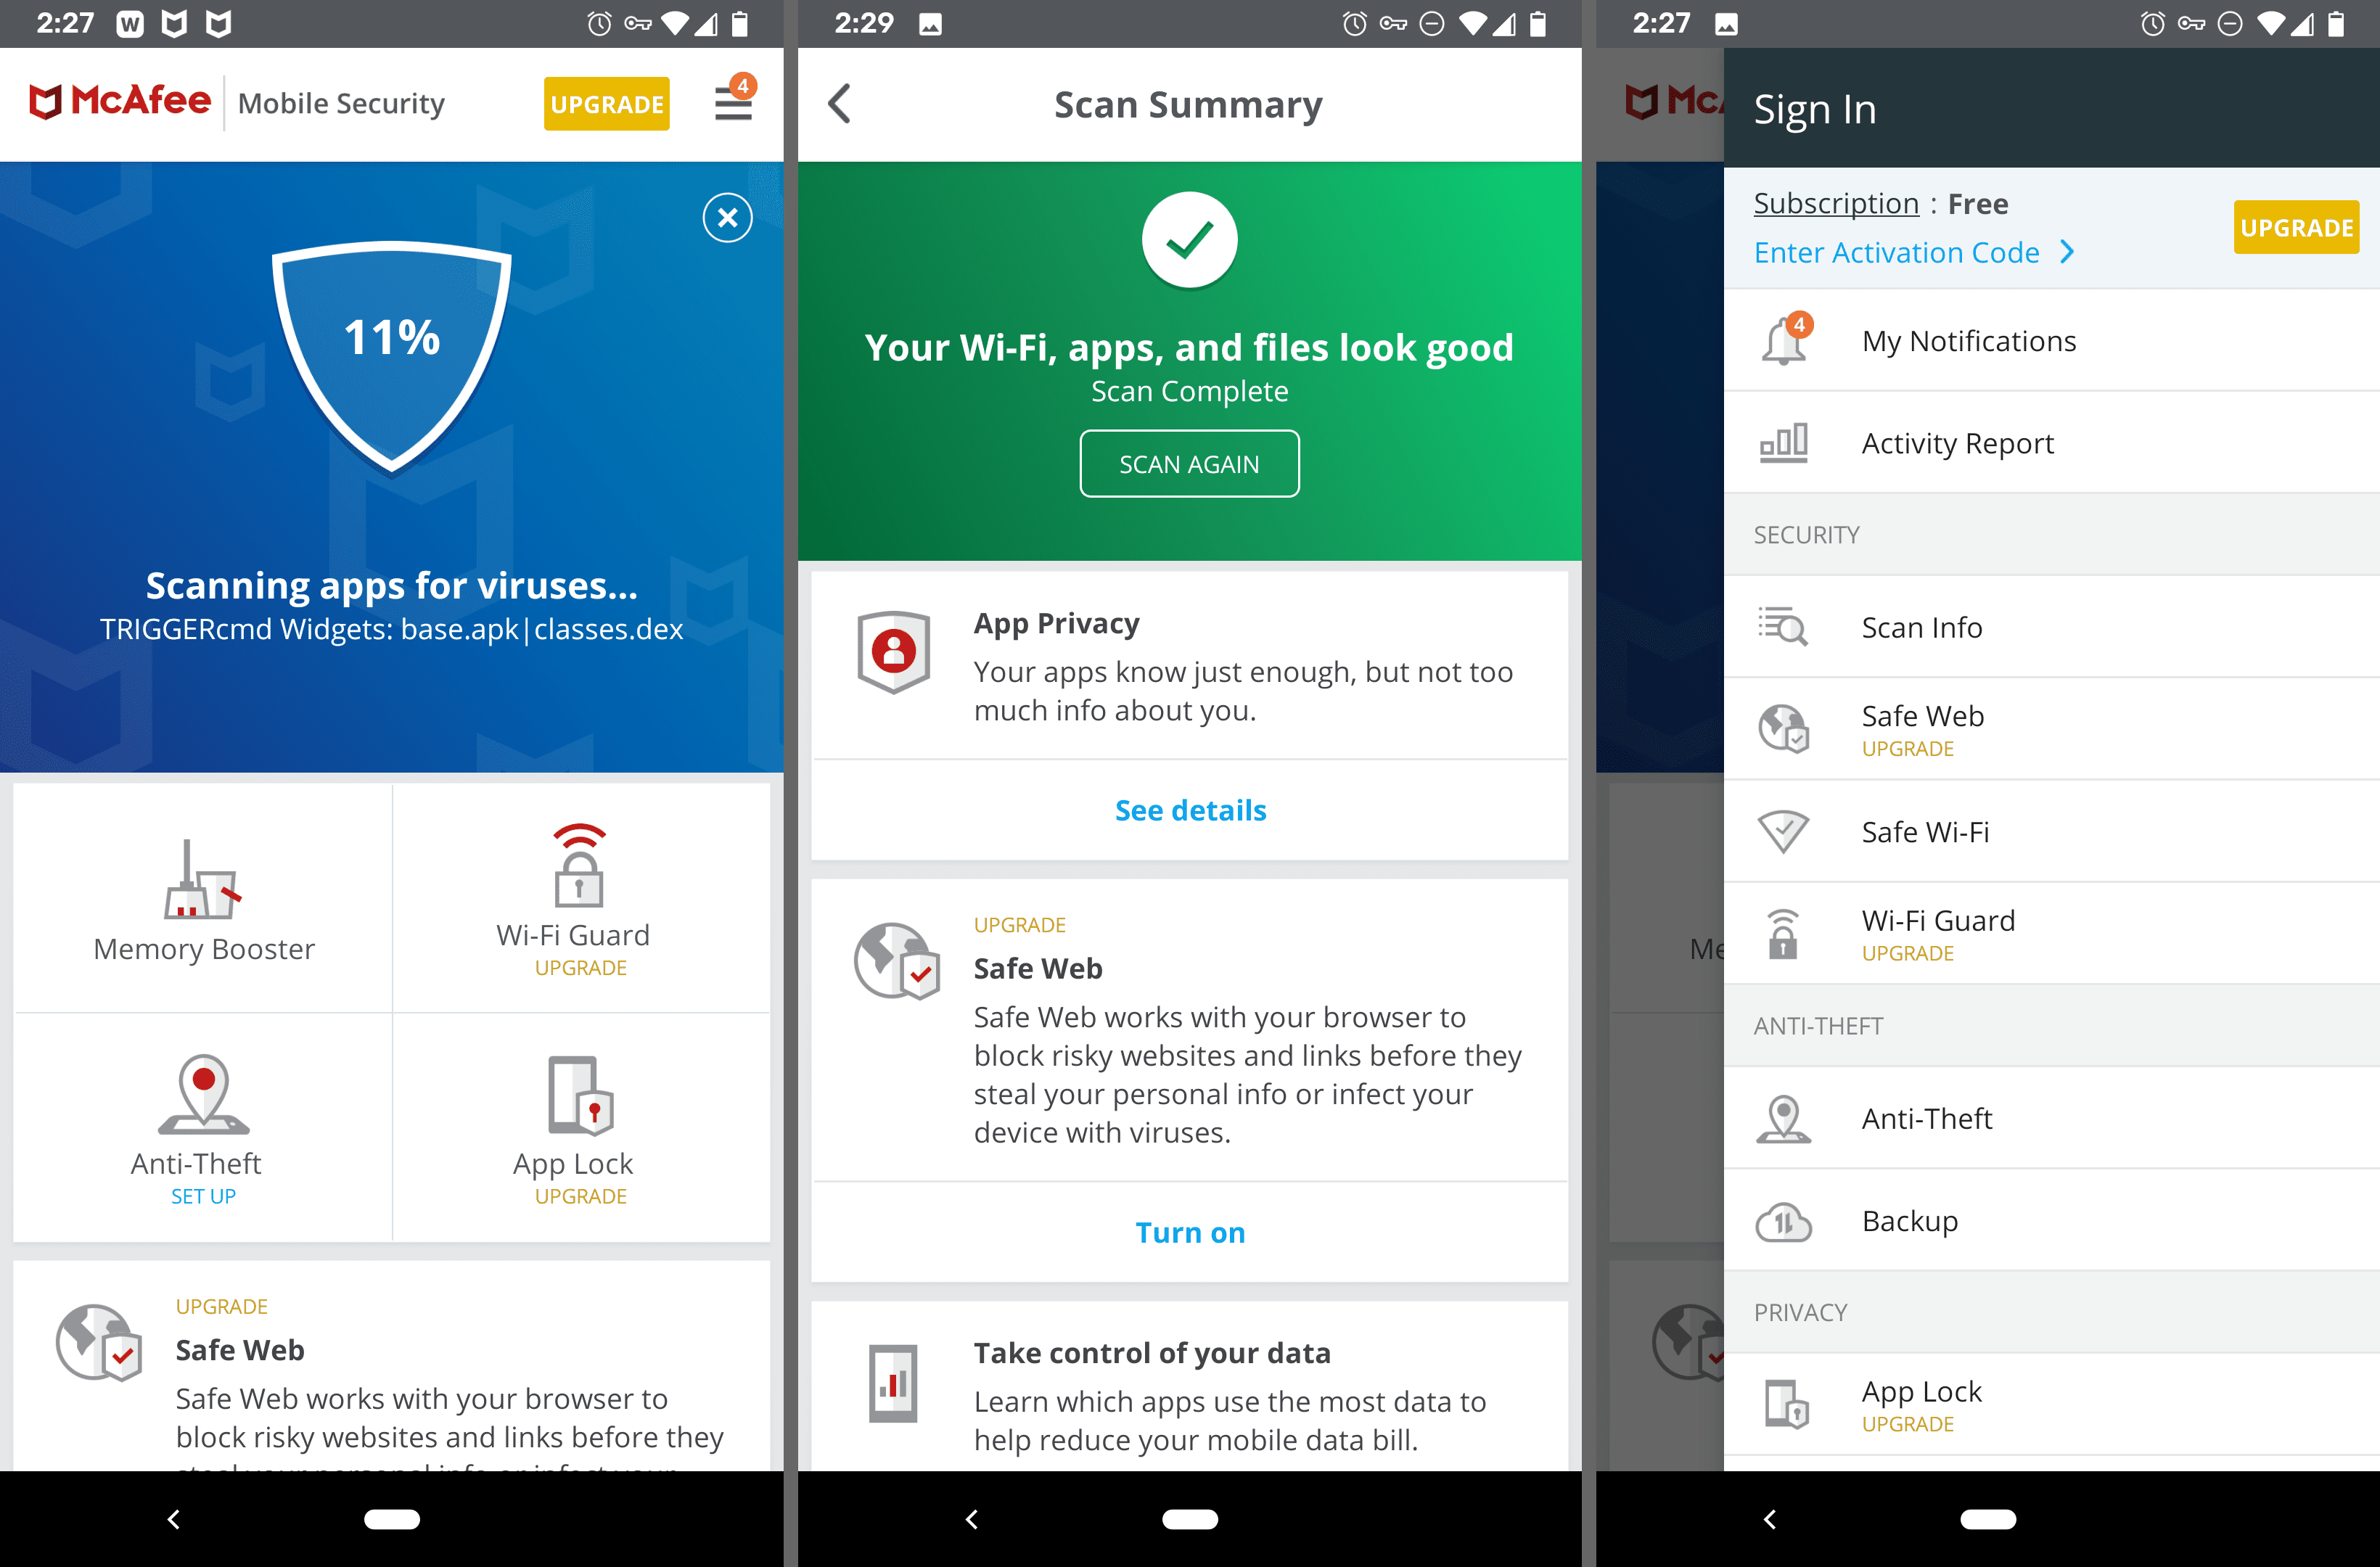 McAfee Mobile Security Android app